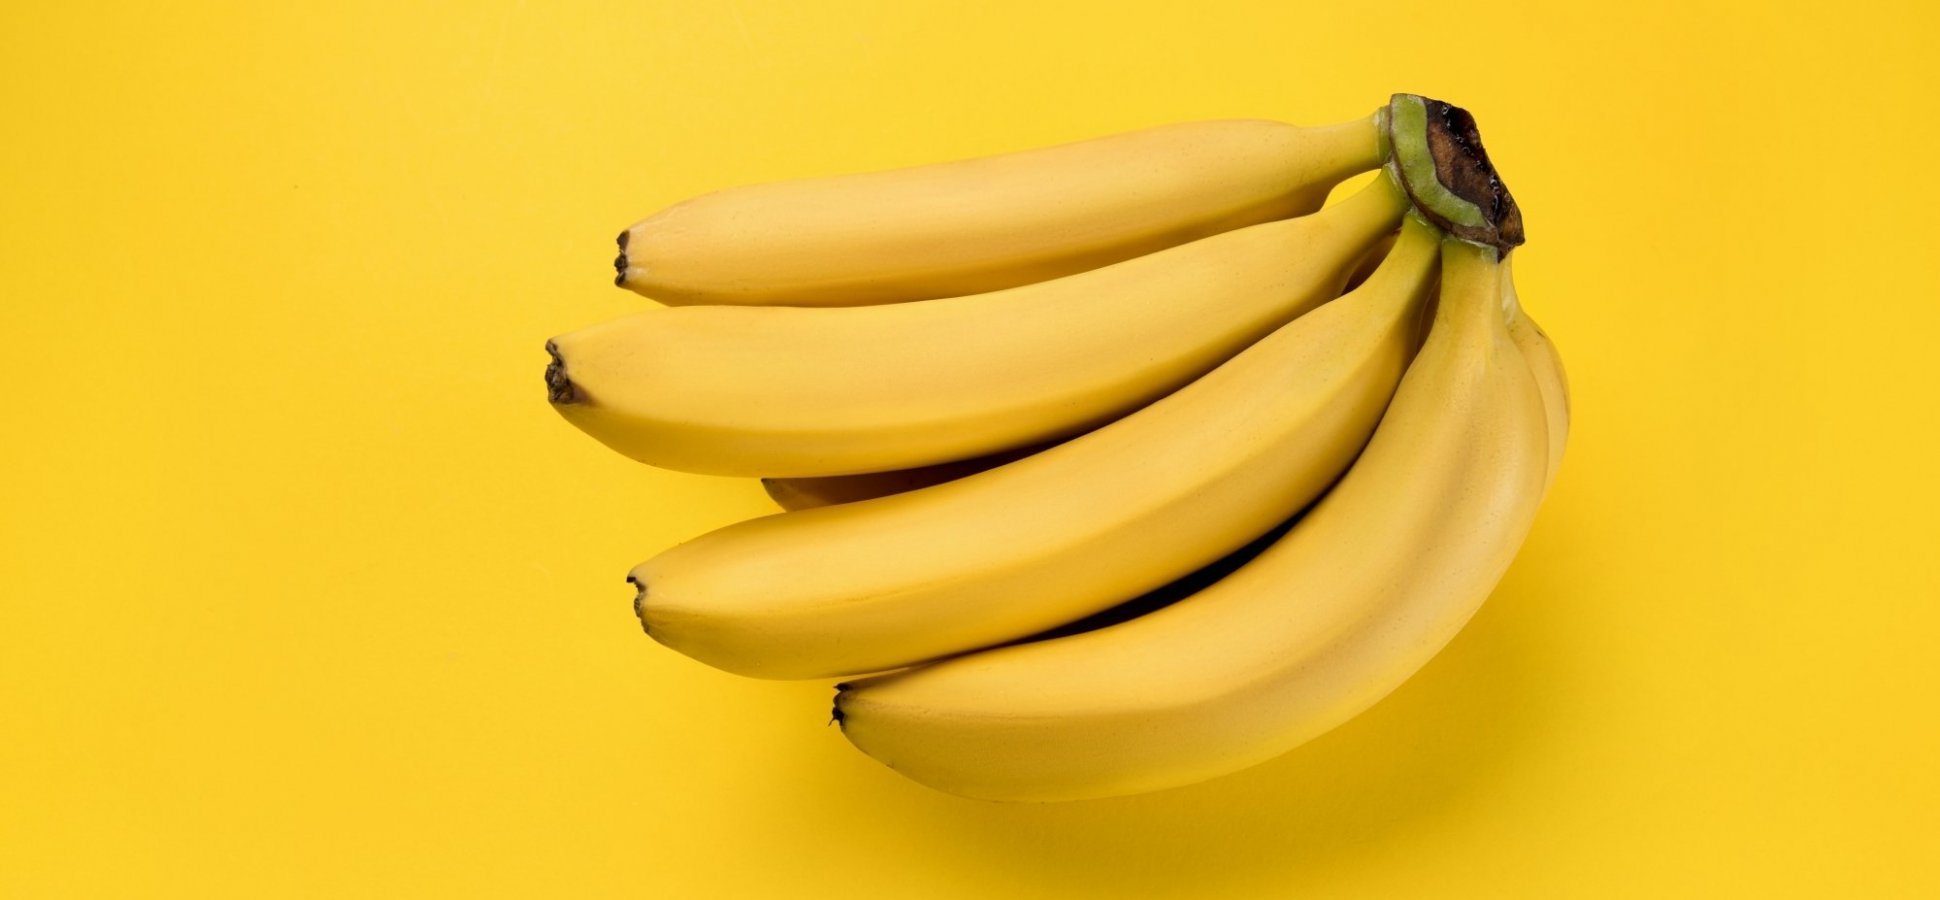 This Supermarket's Way of Selling Bananas Is Pure Genius